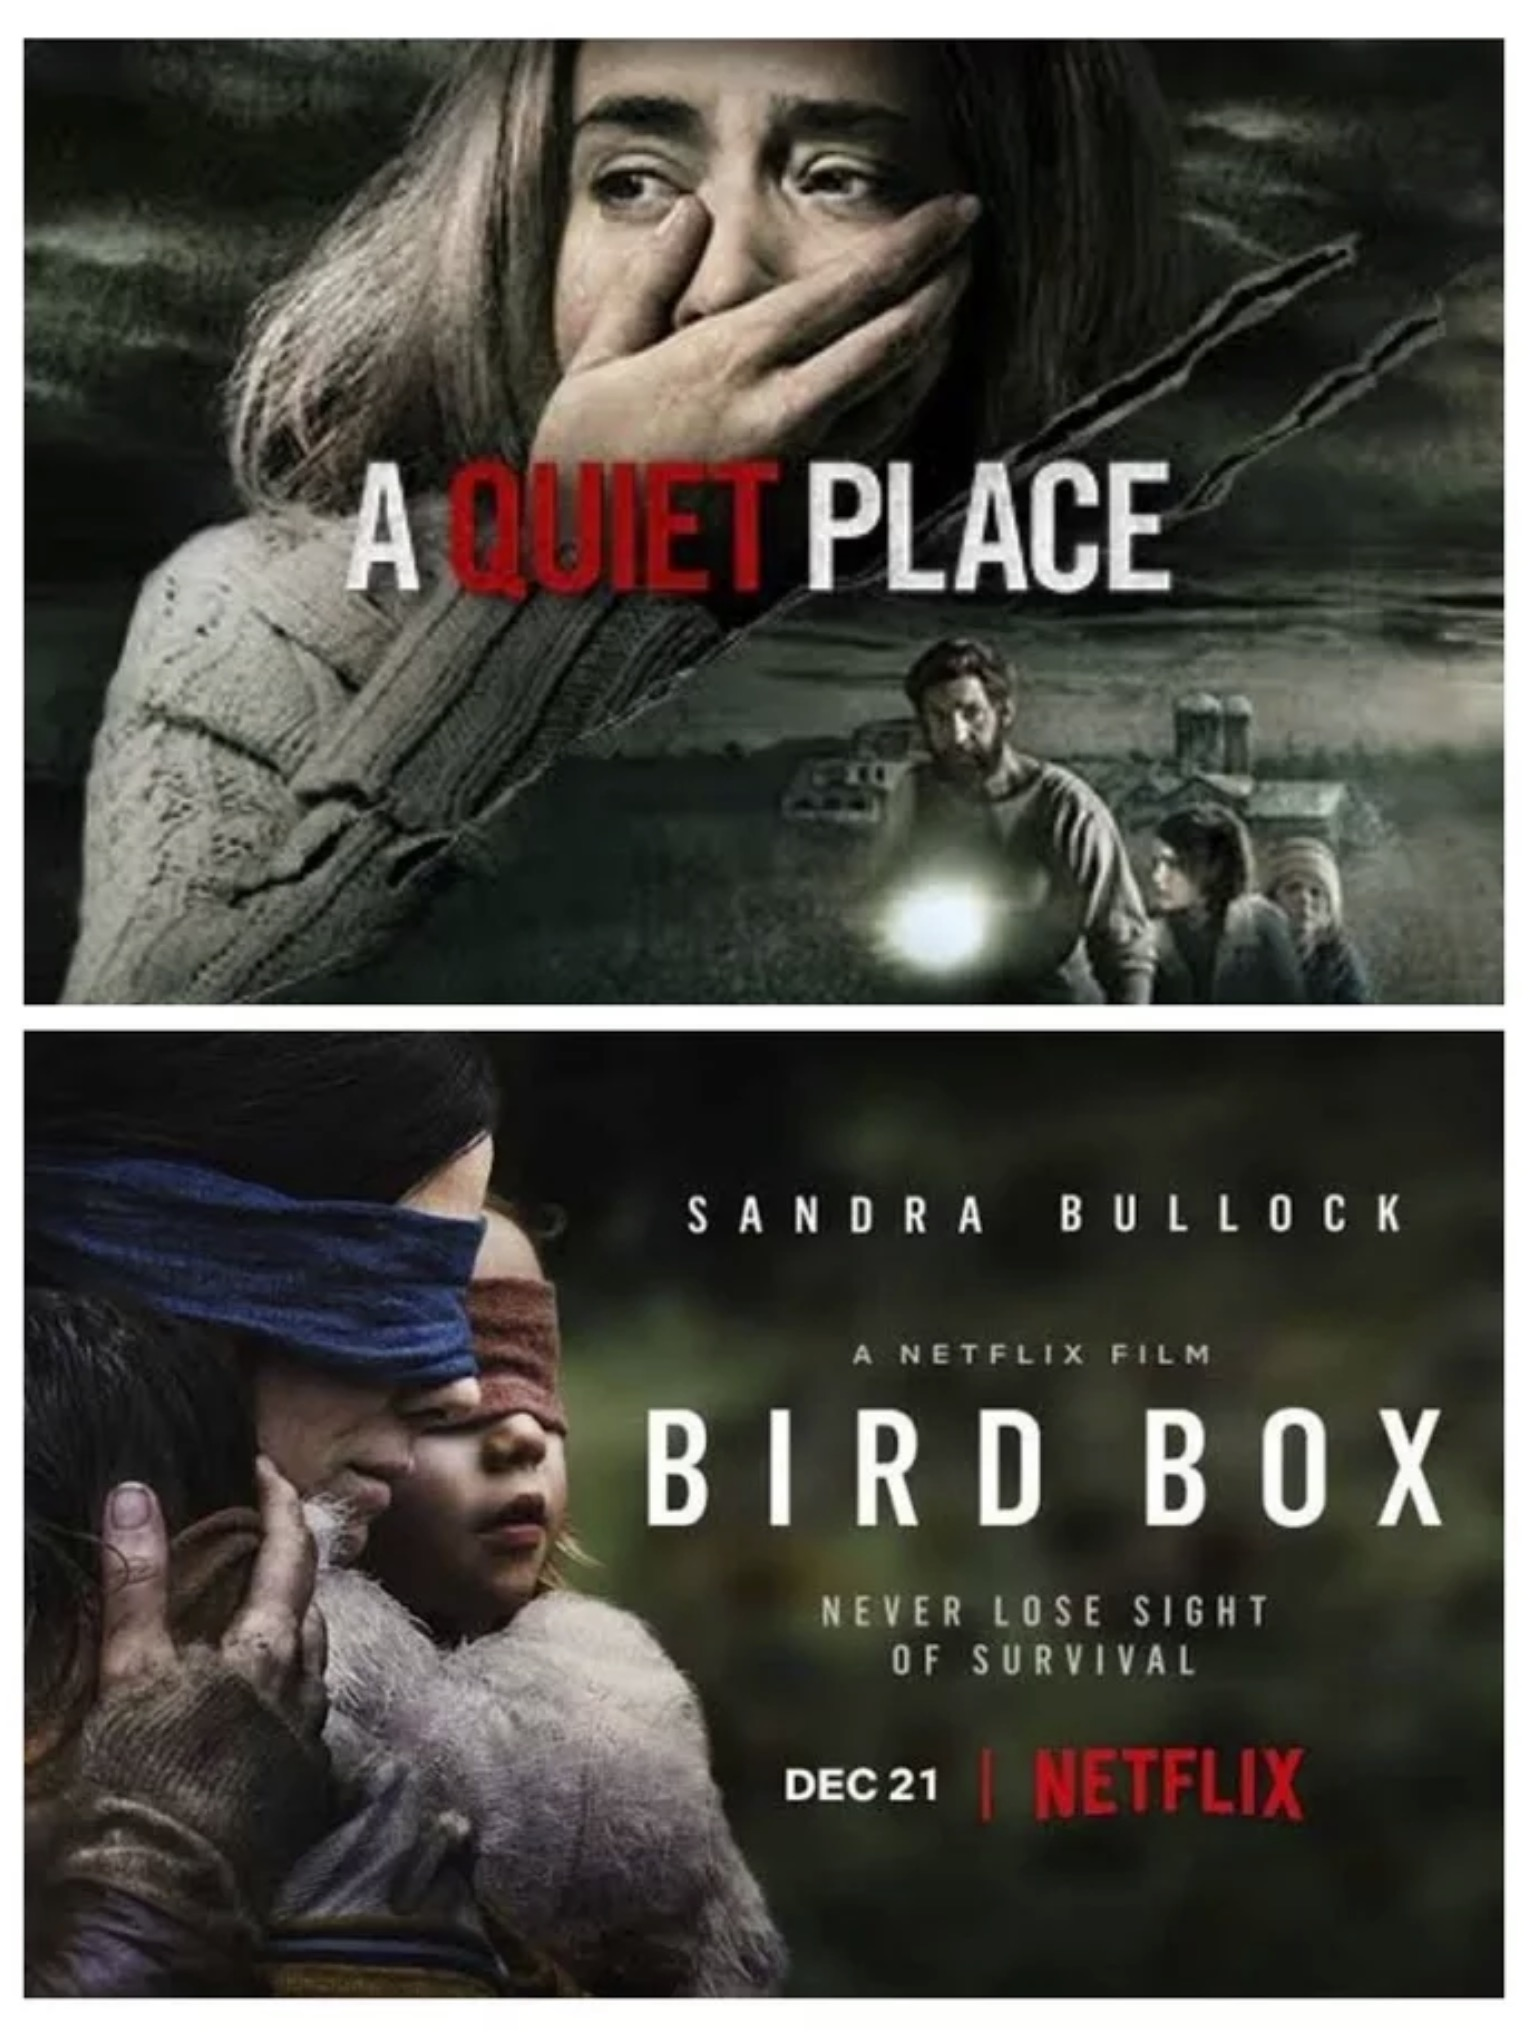 Senses Working Overtime - A Quiet Place and Bird Box